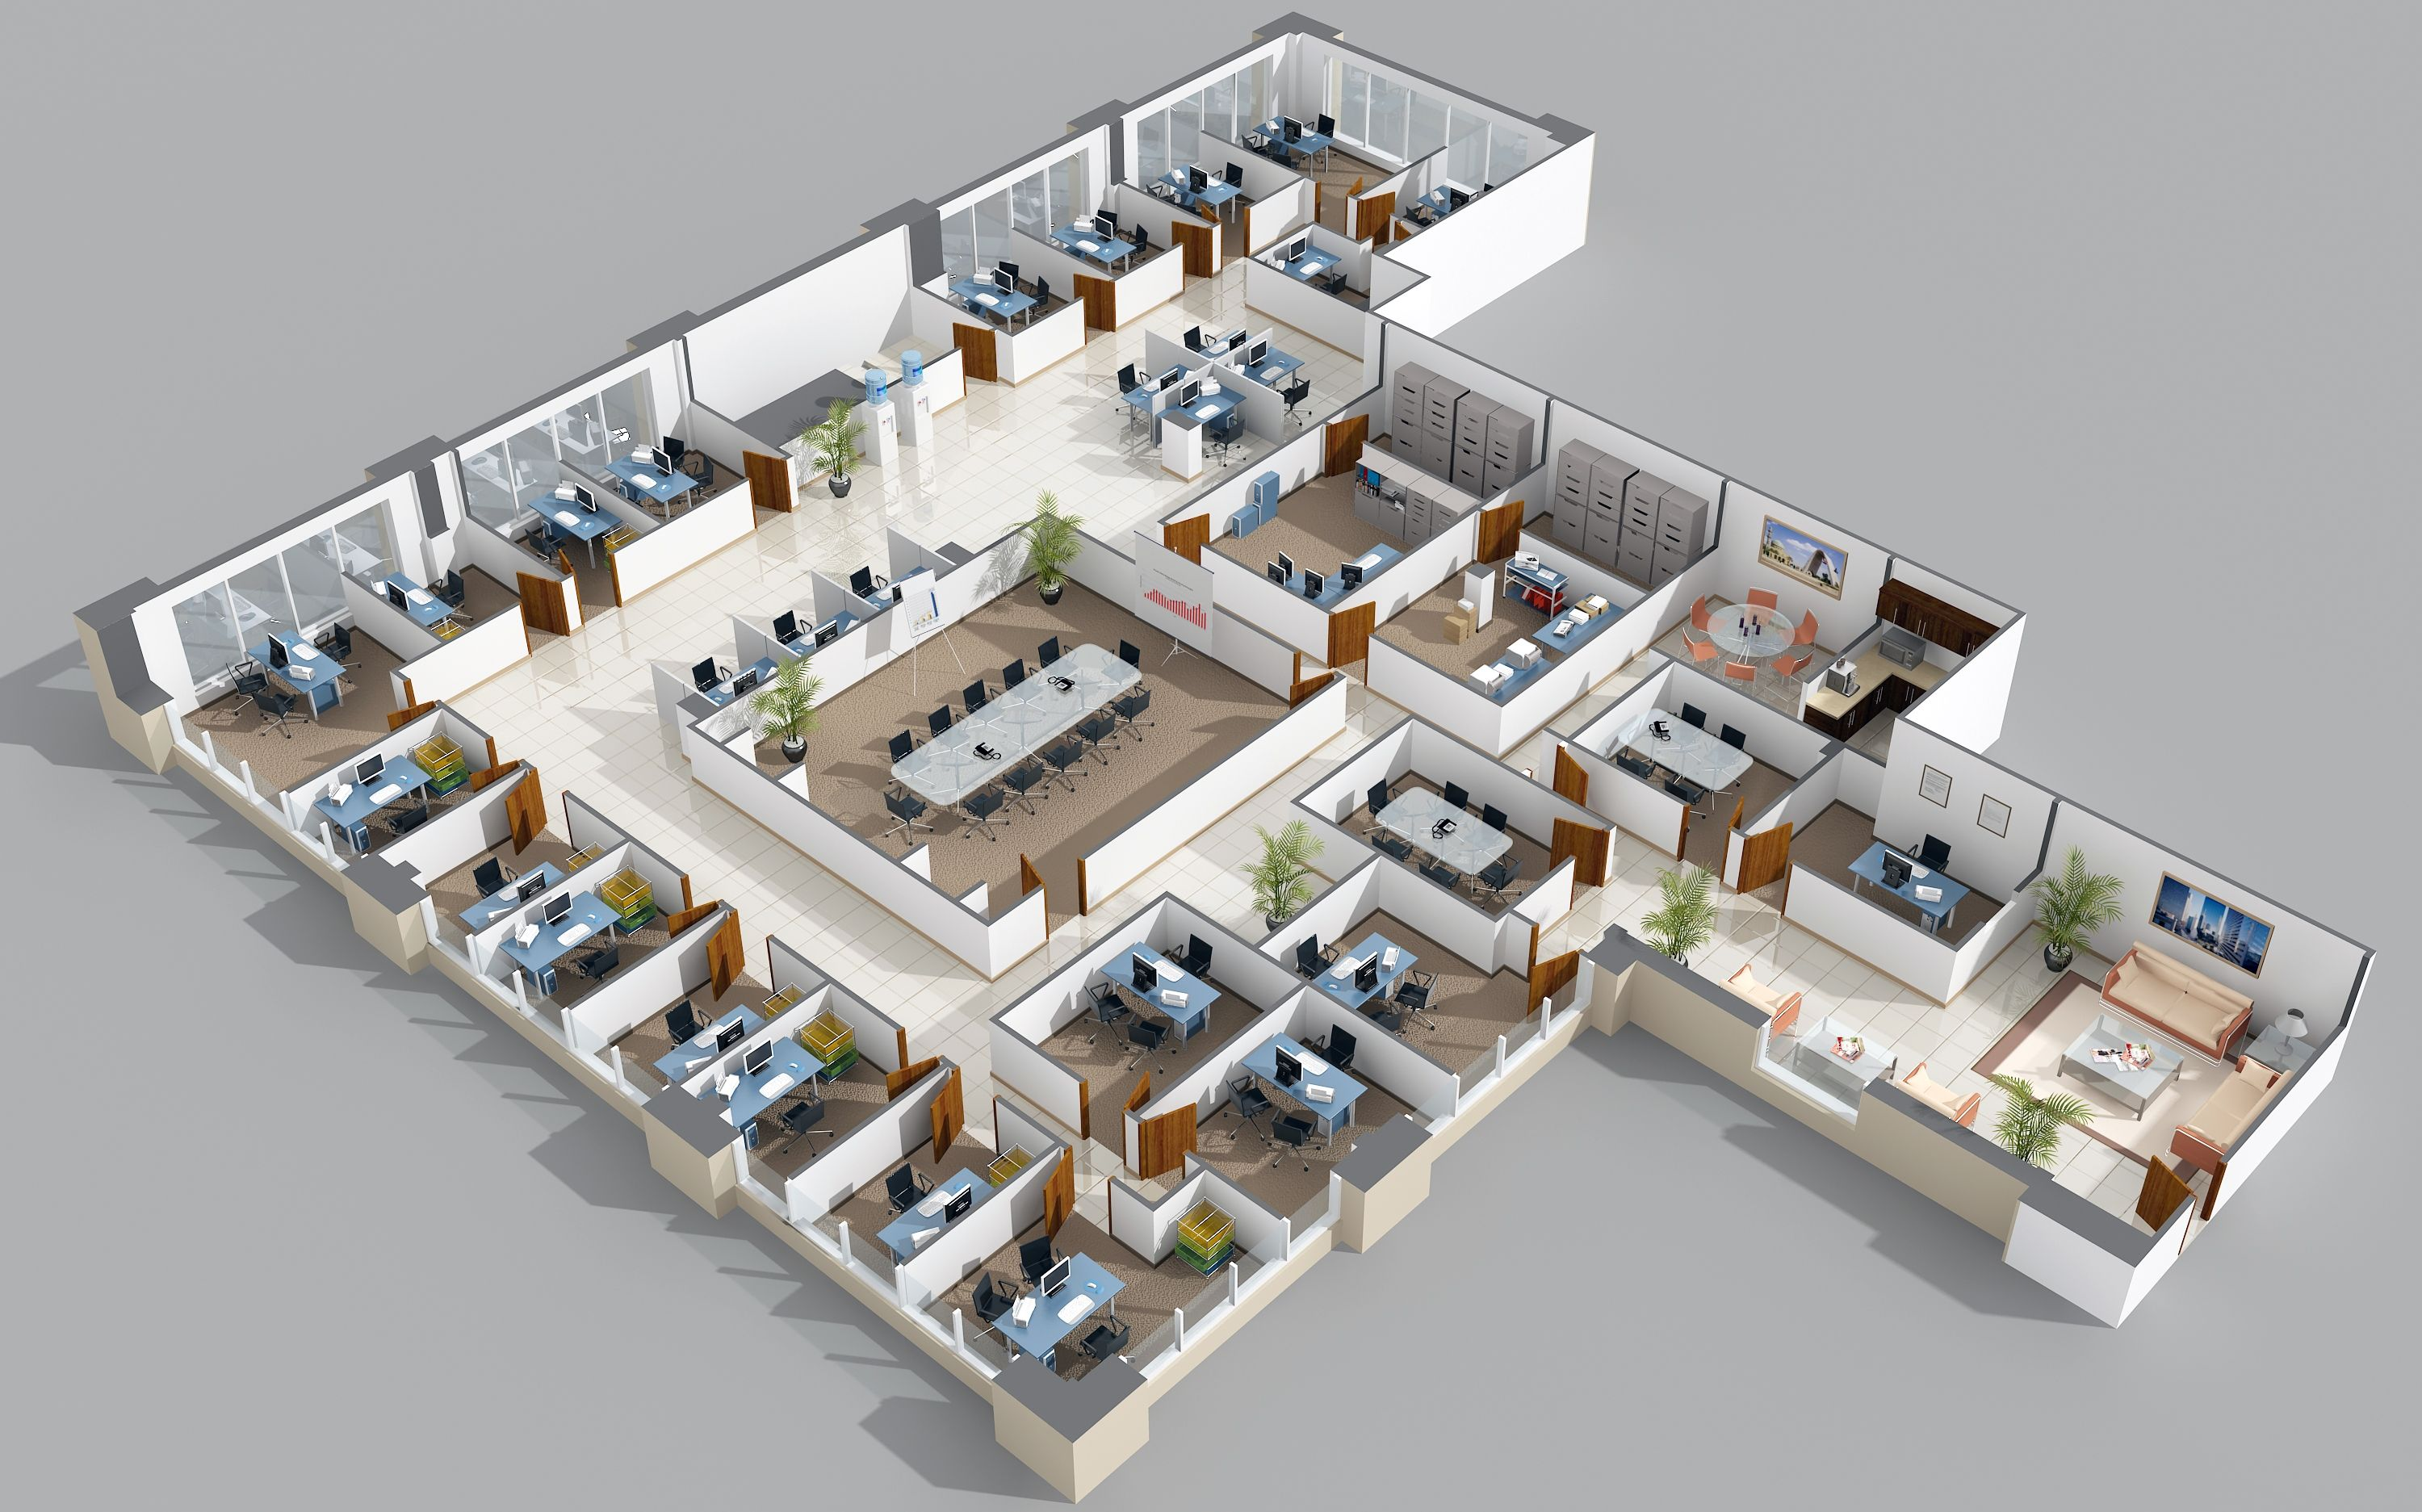 Office layout no doors veritas 99 jean pinterest for Warehouse plans designs